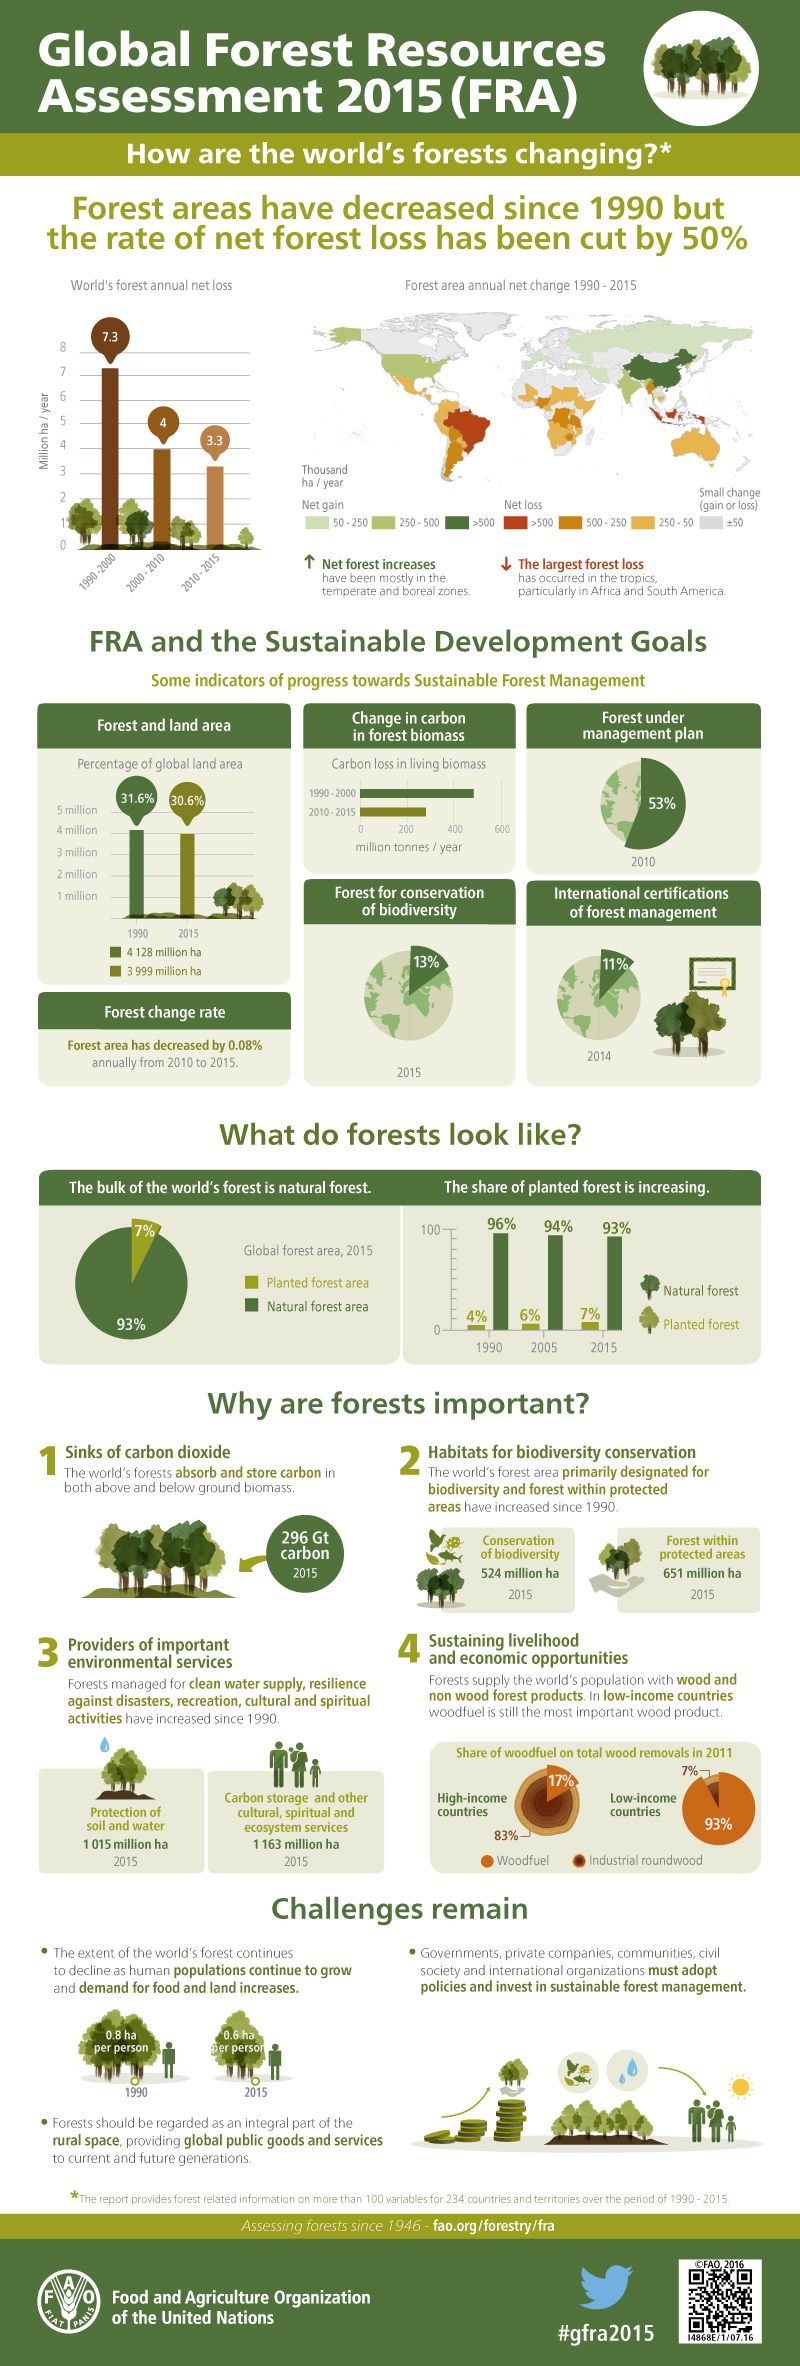 Global Forest Resource Assessment